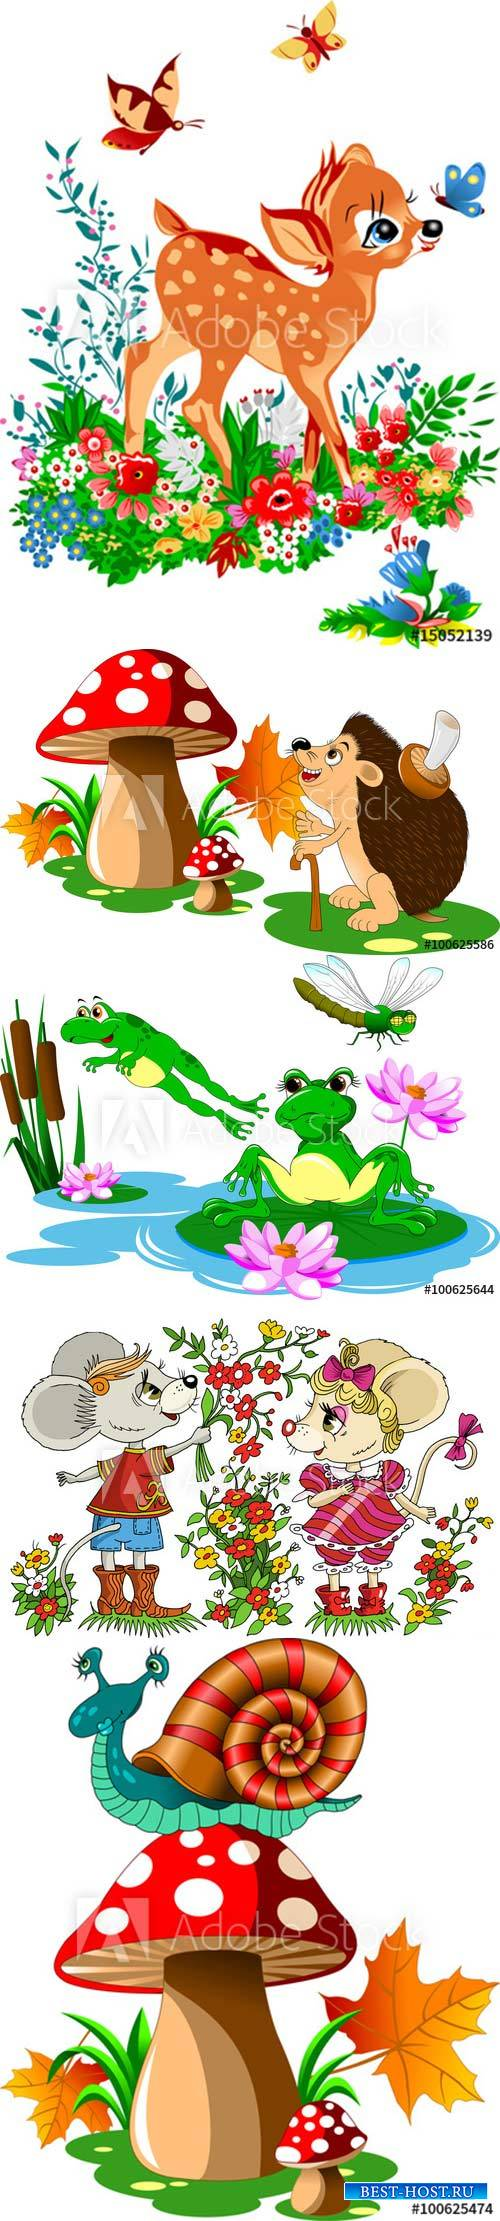 Cartoon vector illustration with animals